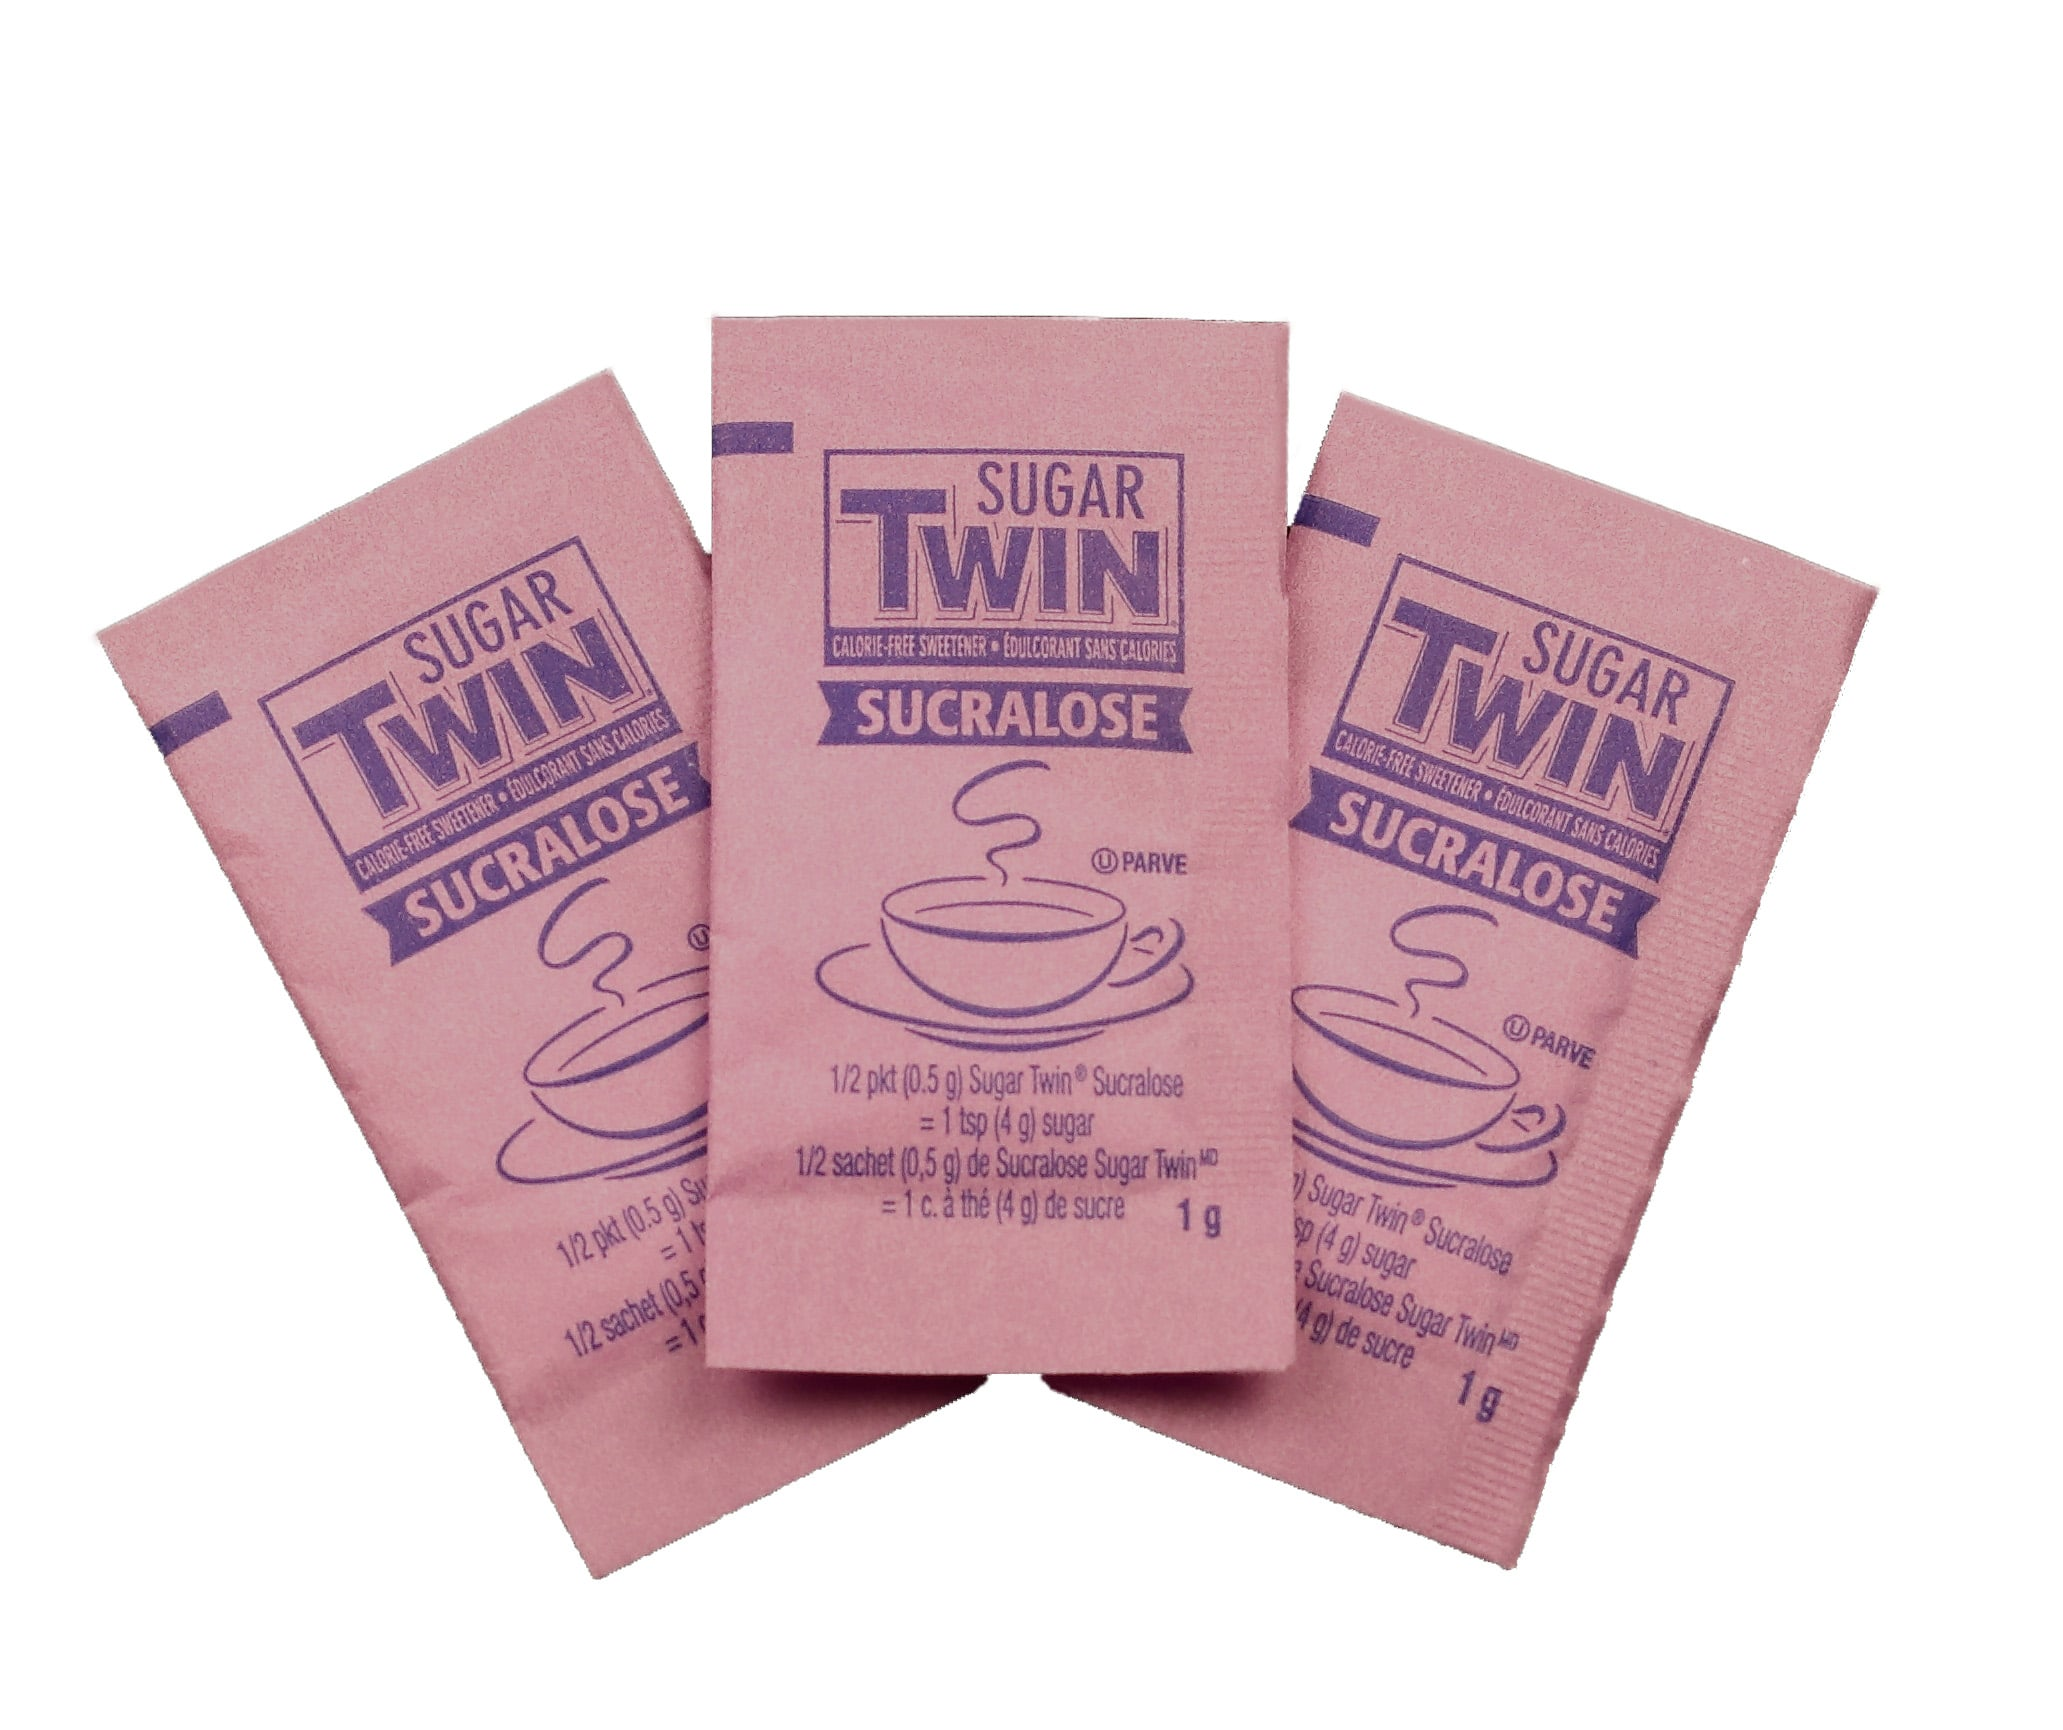 Sugar Twin Sucralose